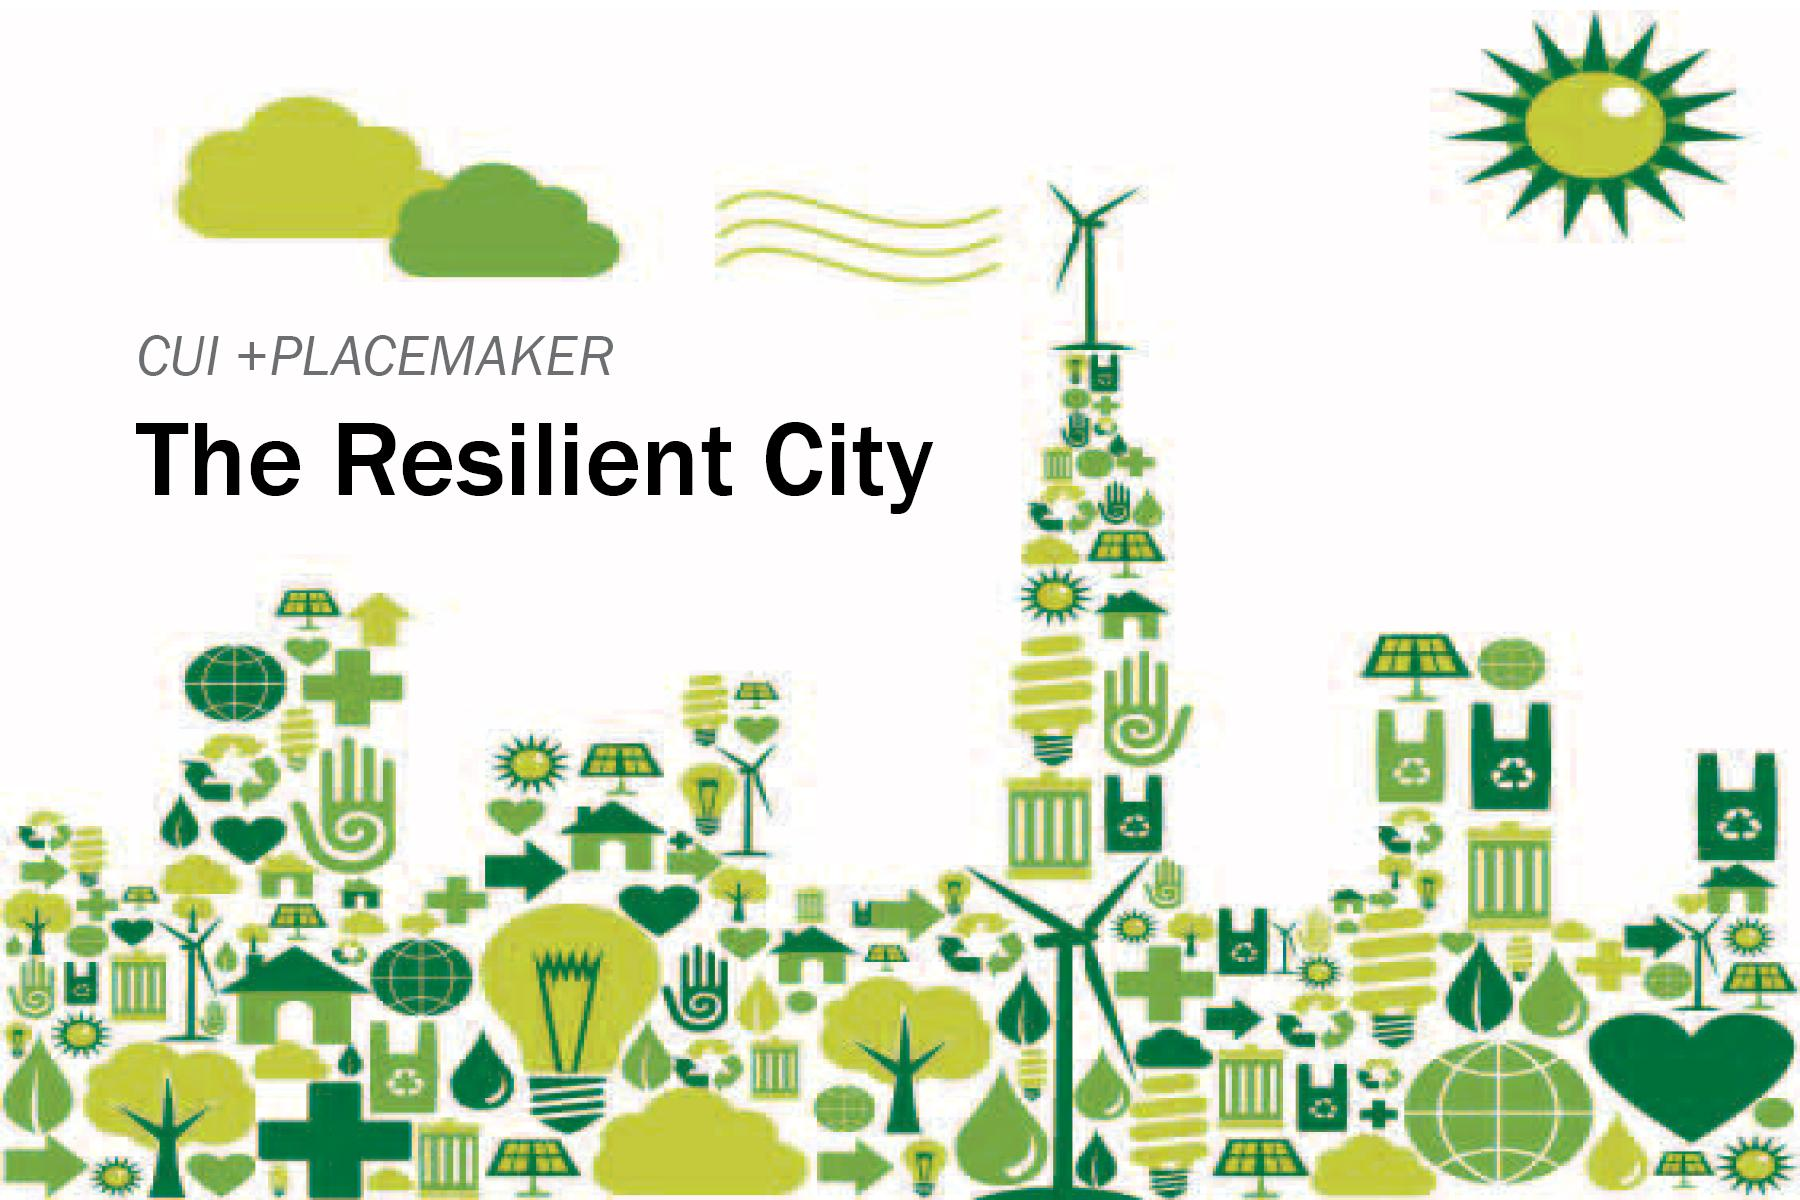 +PlaceMaker: The Resilient City